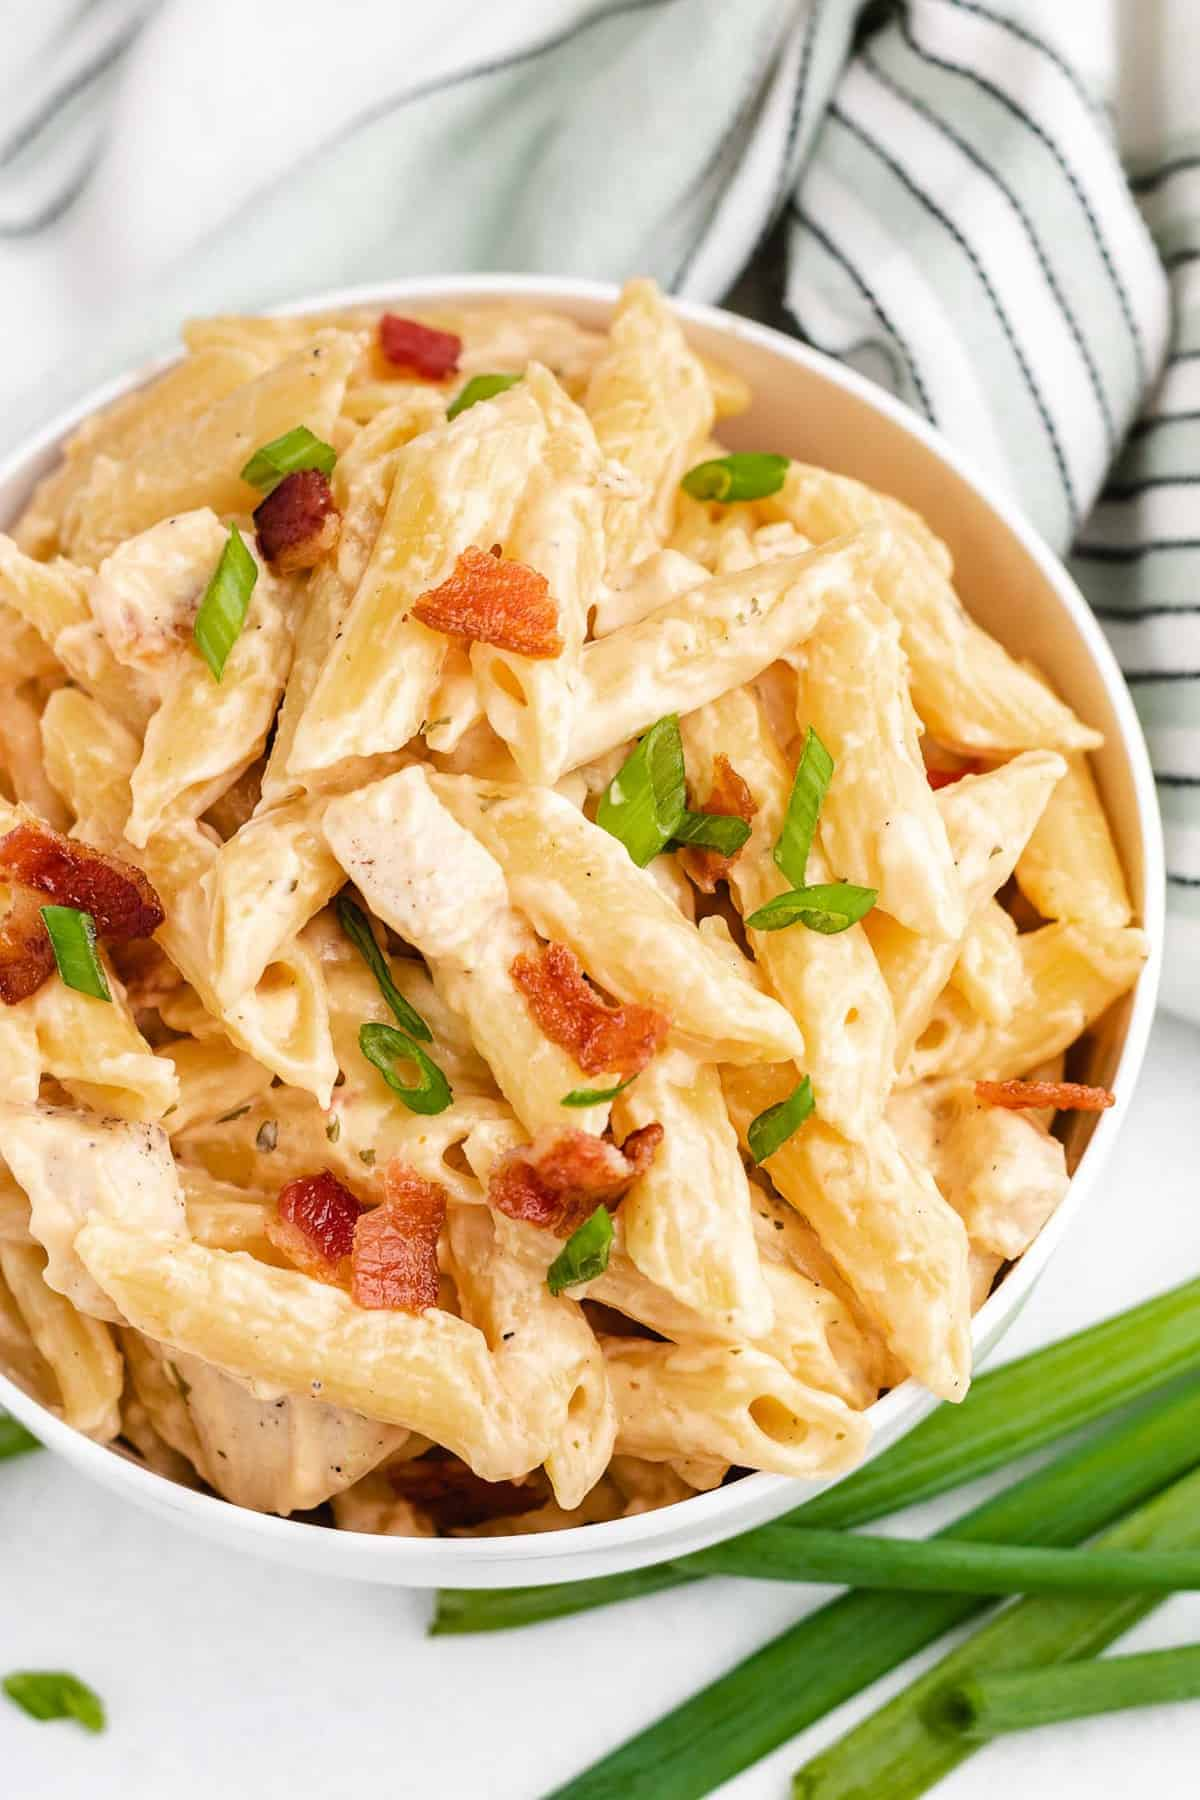 Pasta with chicken and a cream sauce, in a white bowl, garnished with green onions.